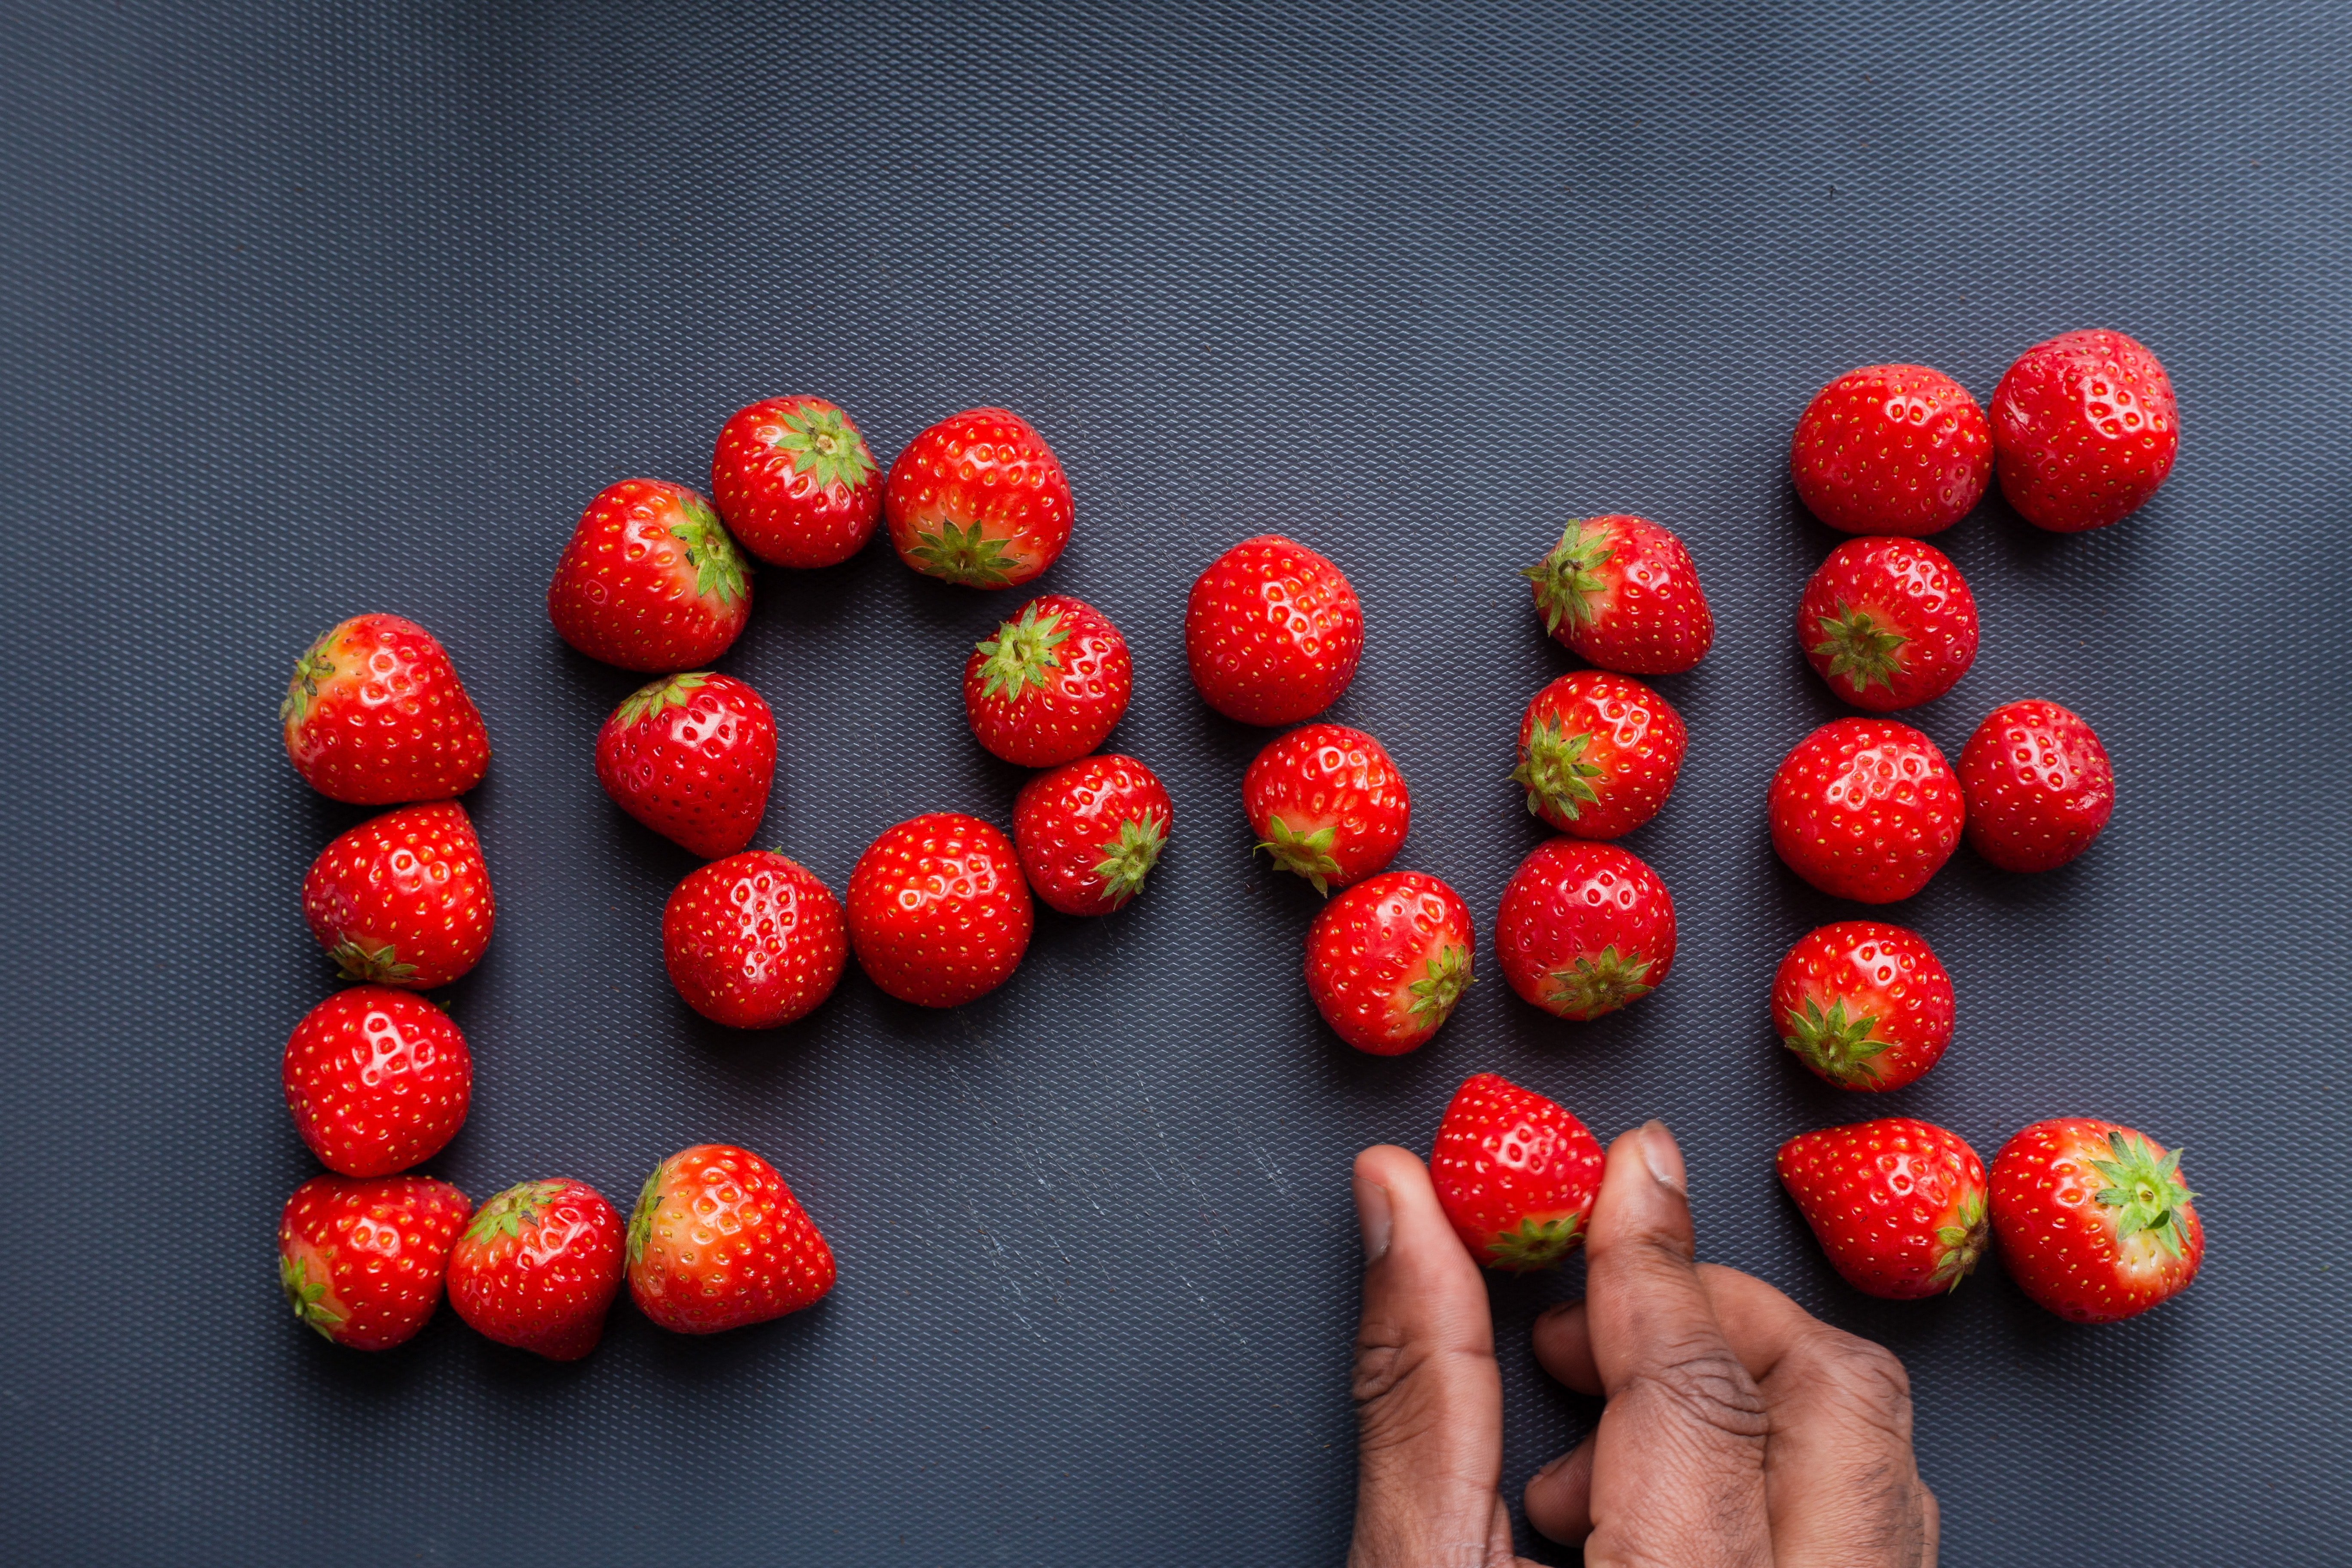 Strawberries arranged into the word Love